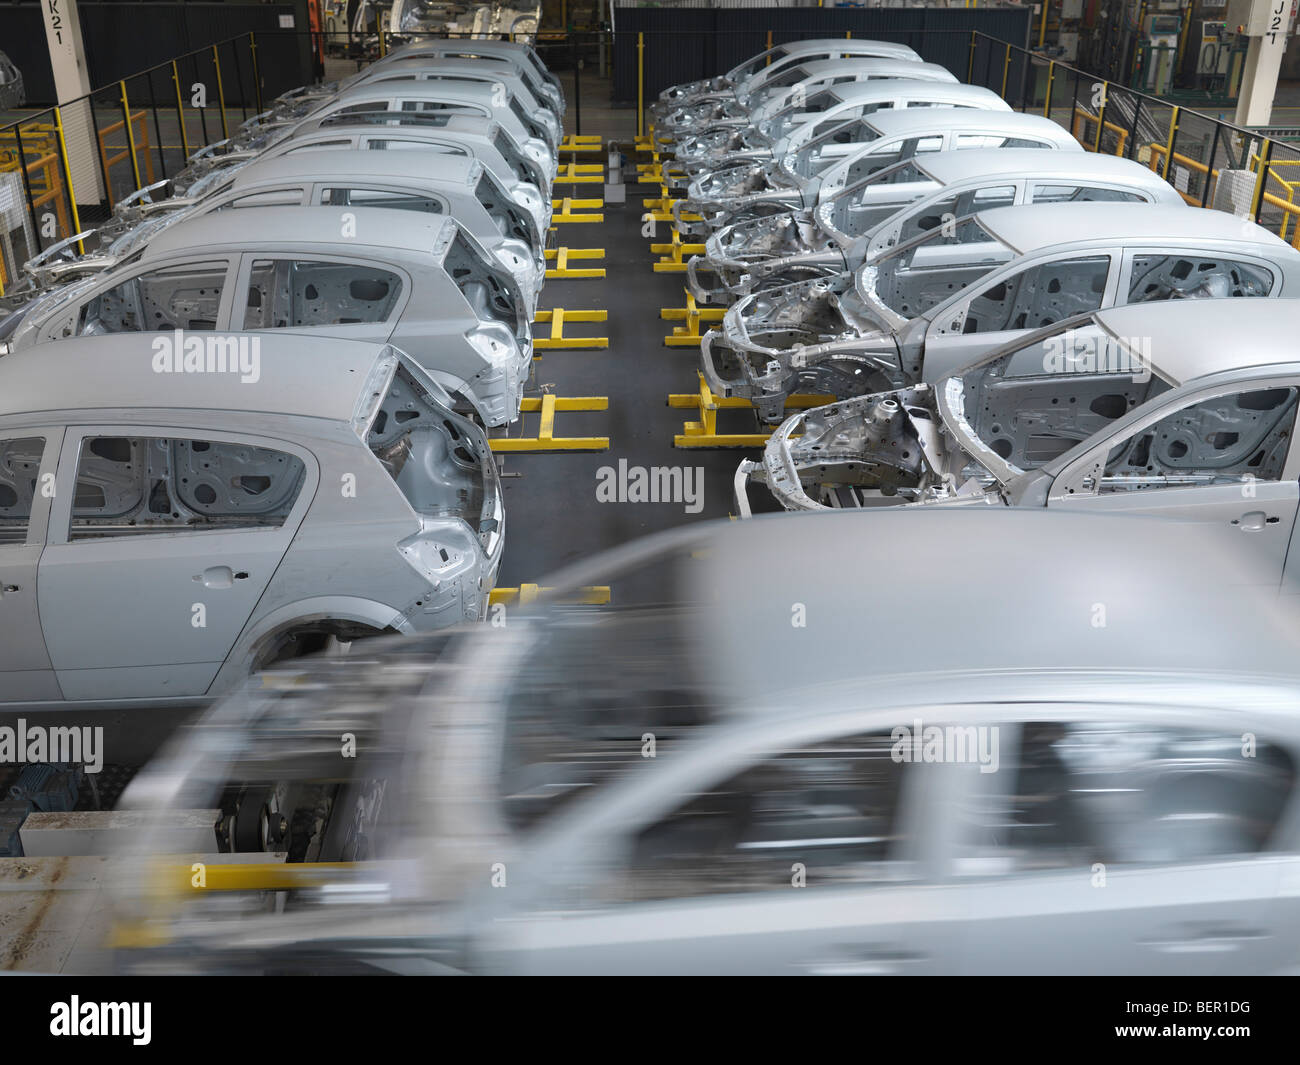 Cars In Production In Plant - Stock Image